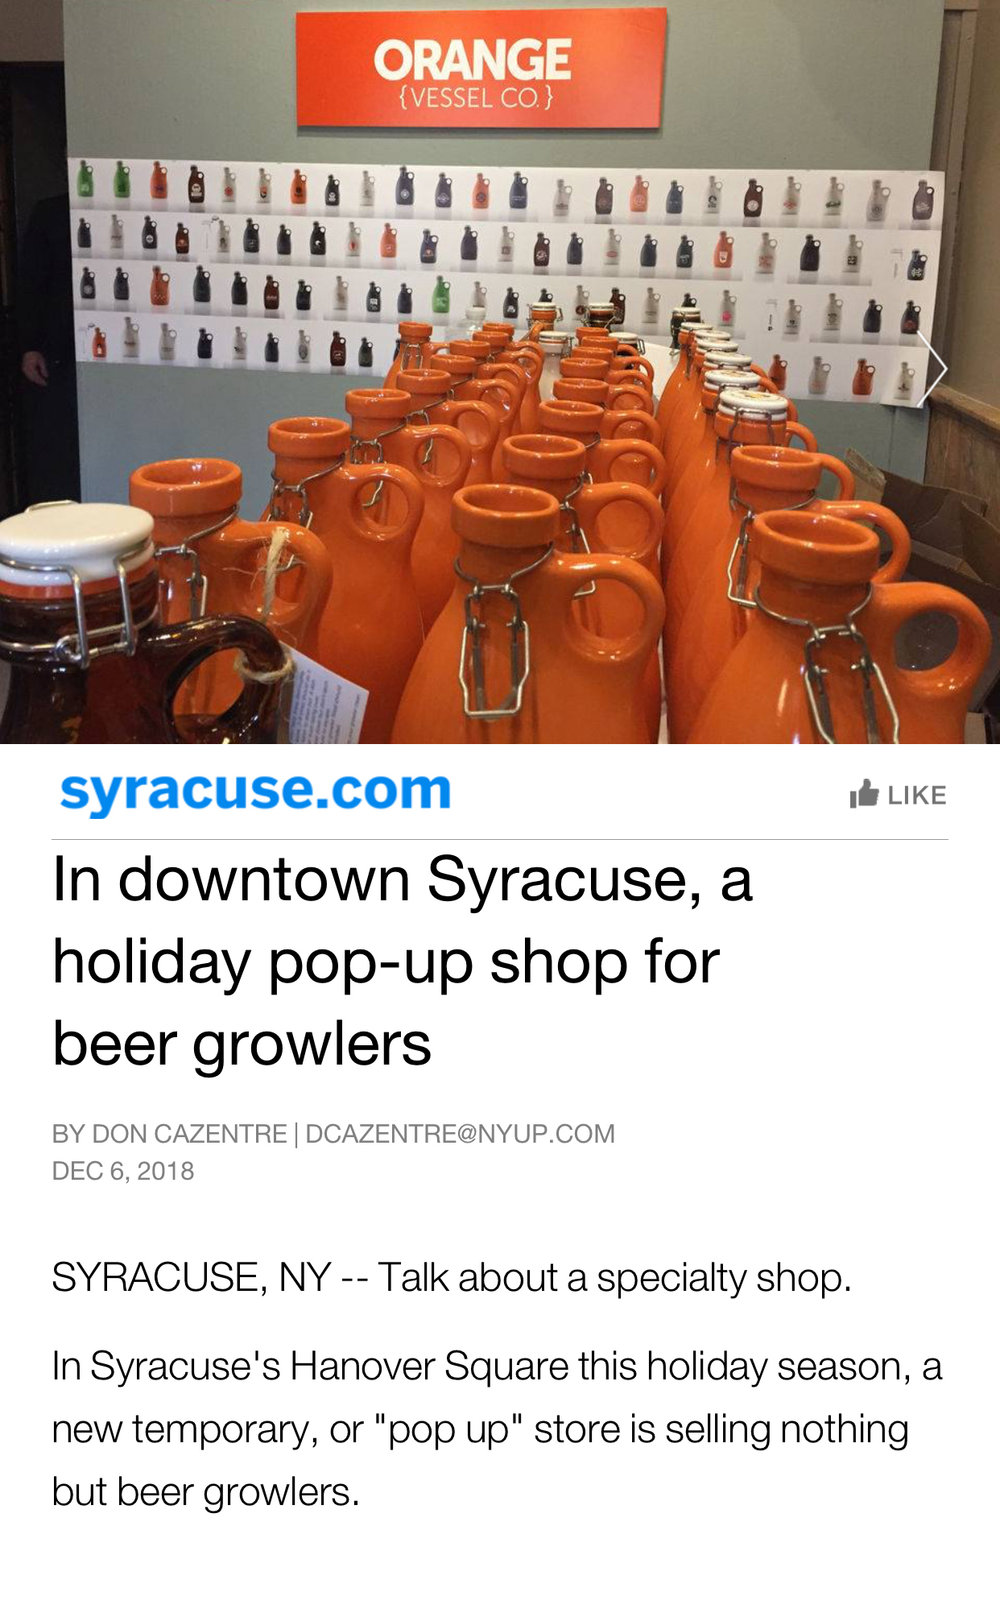 Orange-Vessel-Holiday-Pop-Up-Shop-2018-Syracuse-NY-Rob-Englert-Steve-Tarolli-Don-Cazentre.jpg